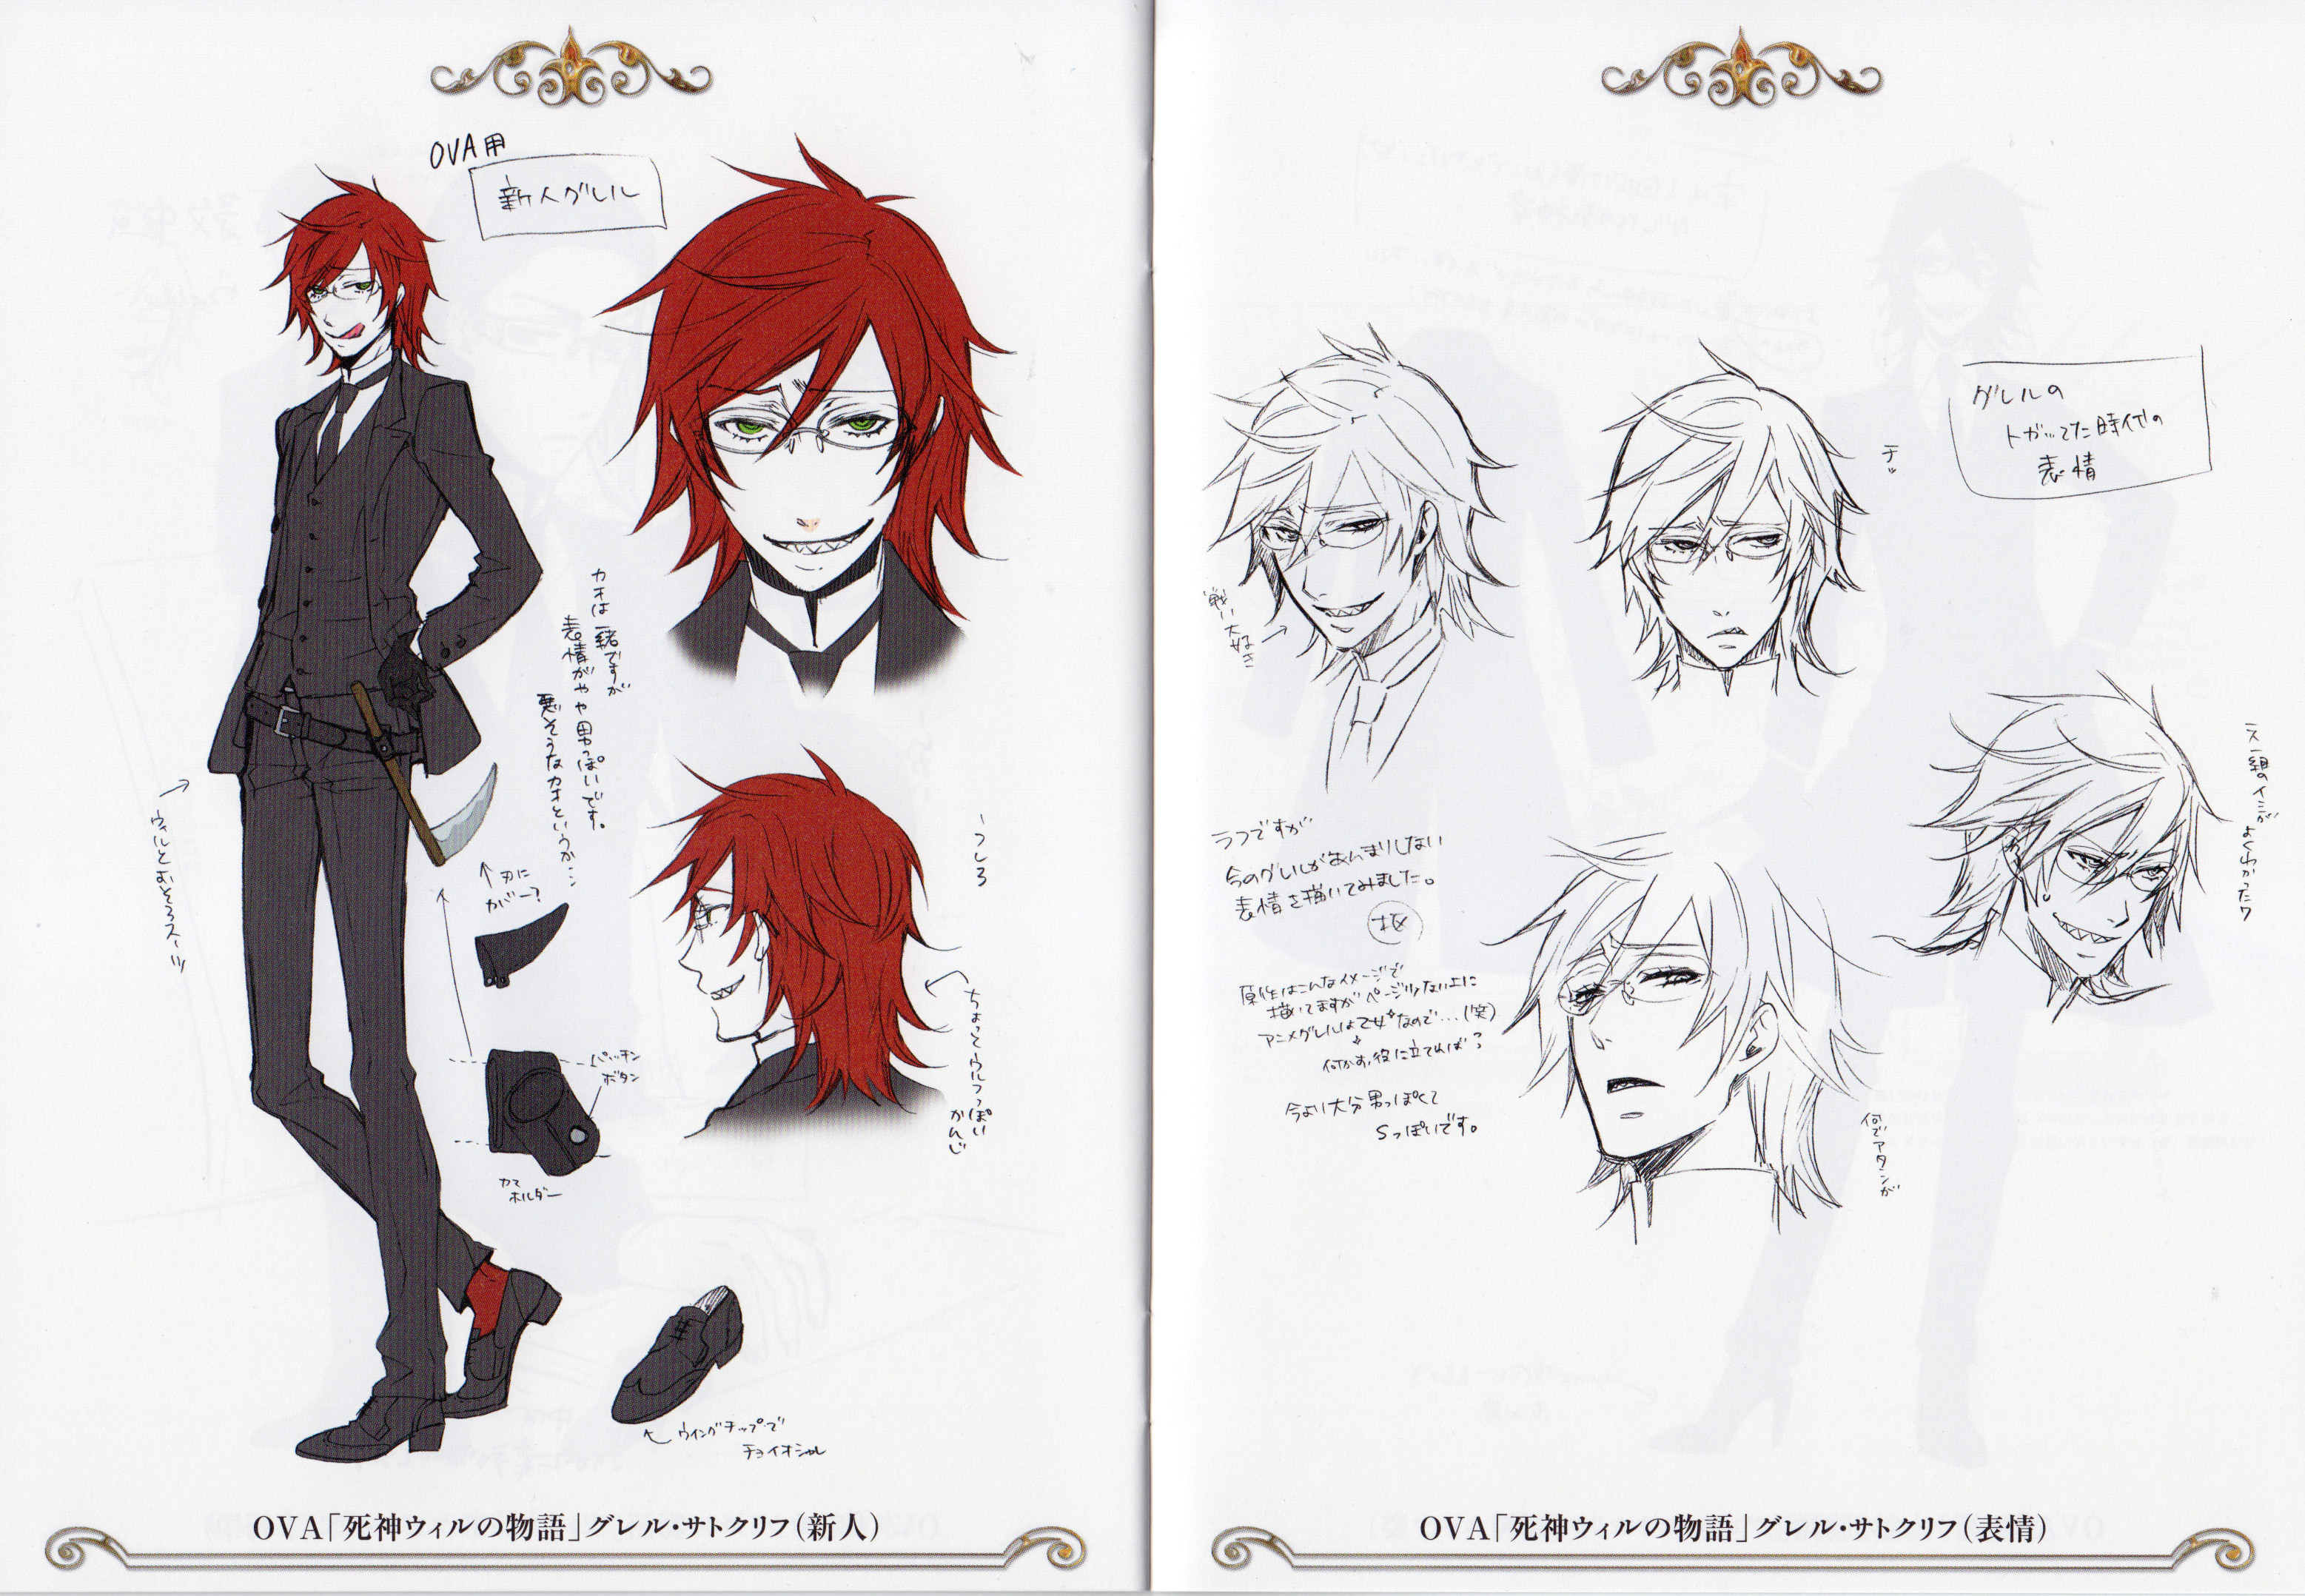 3114x2156 Grell Sutcliff download Grell Sutcliff image